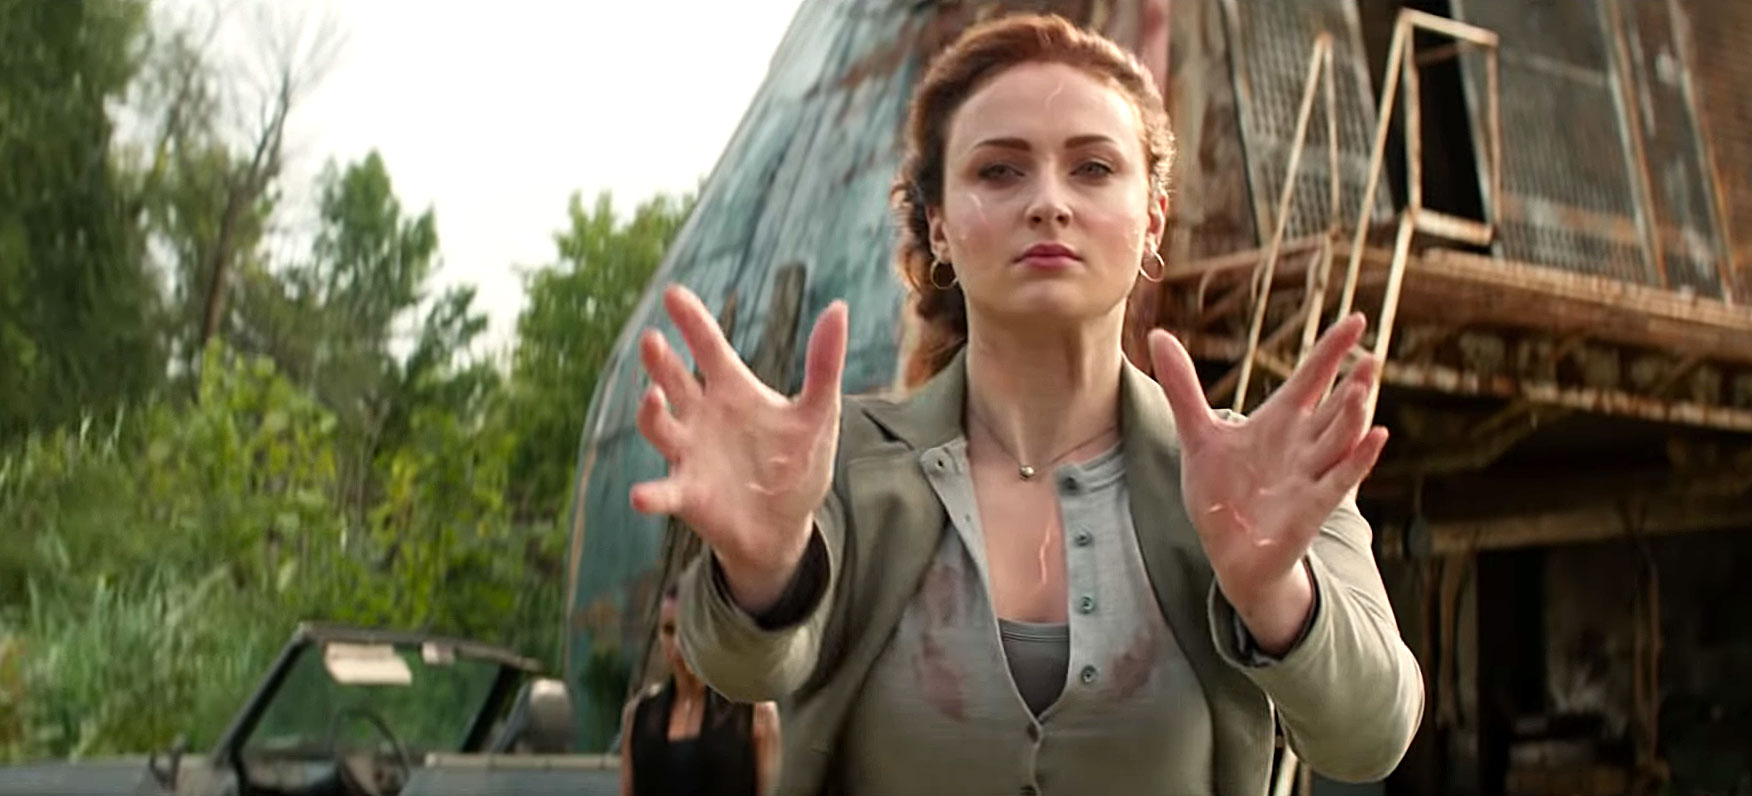 Can't Miss Summer Movie Preview - Goodbye, Sansa Stark. Fresh off the end of Game of Thrones , Sophie Turner returns as Jean Grey in the 12th X-Men film.